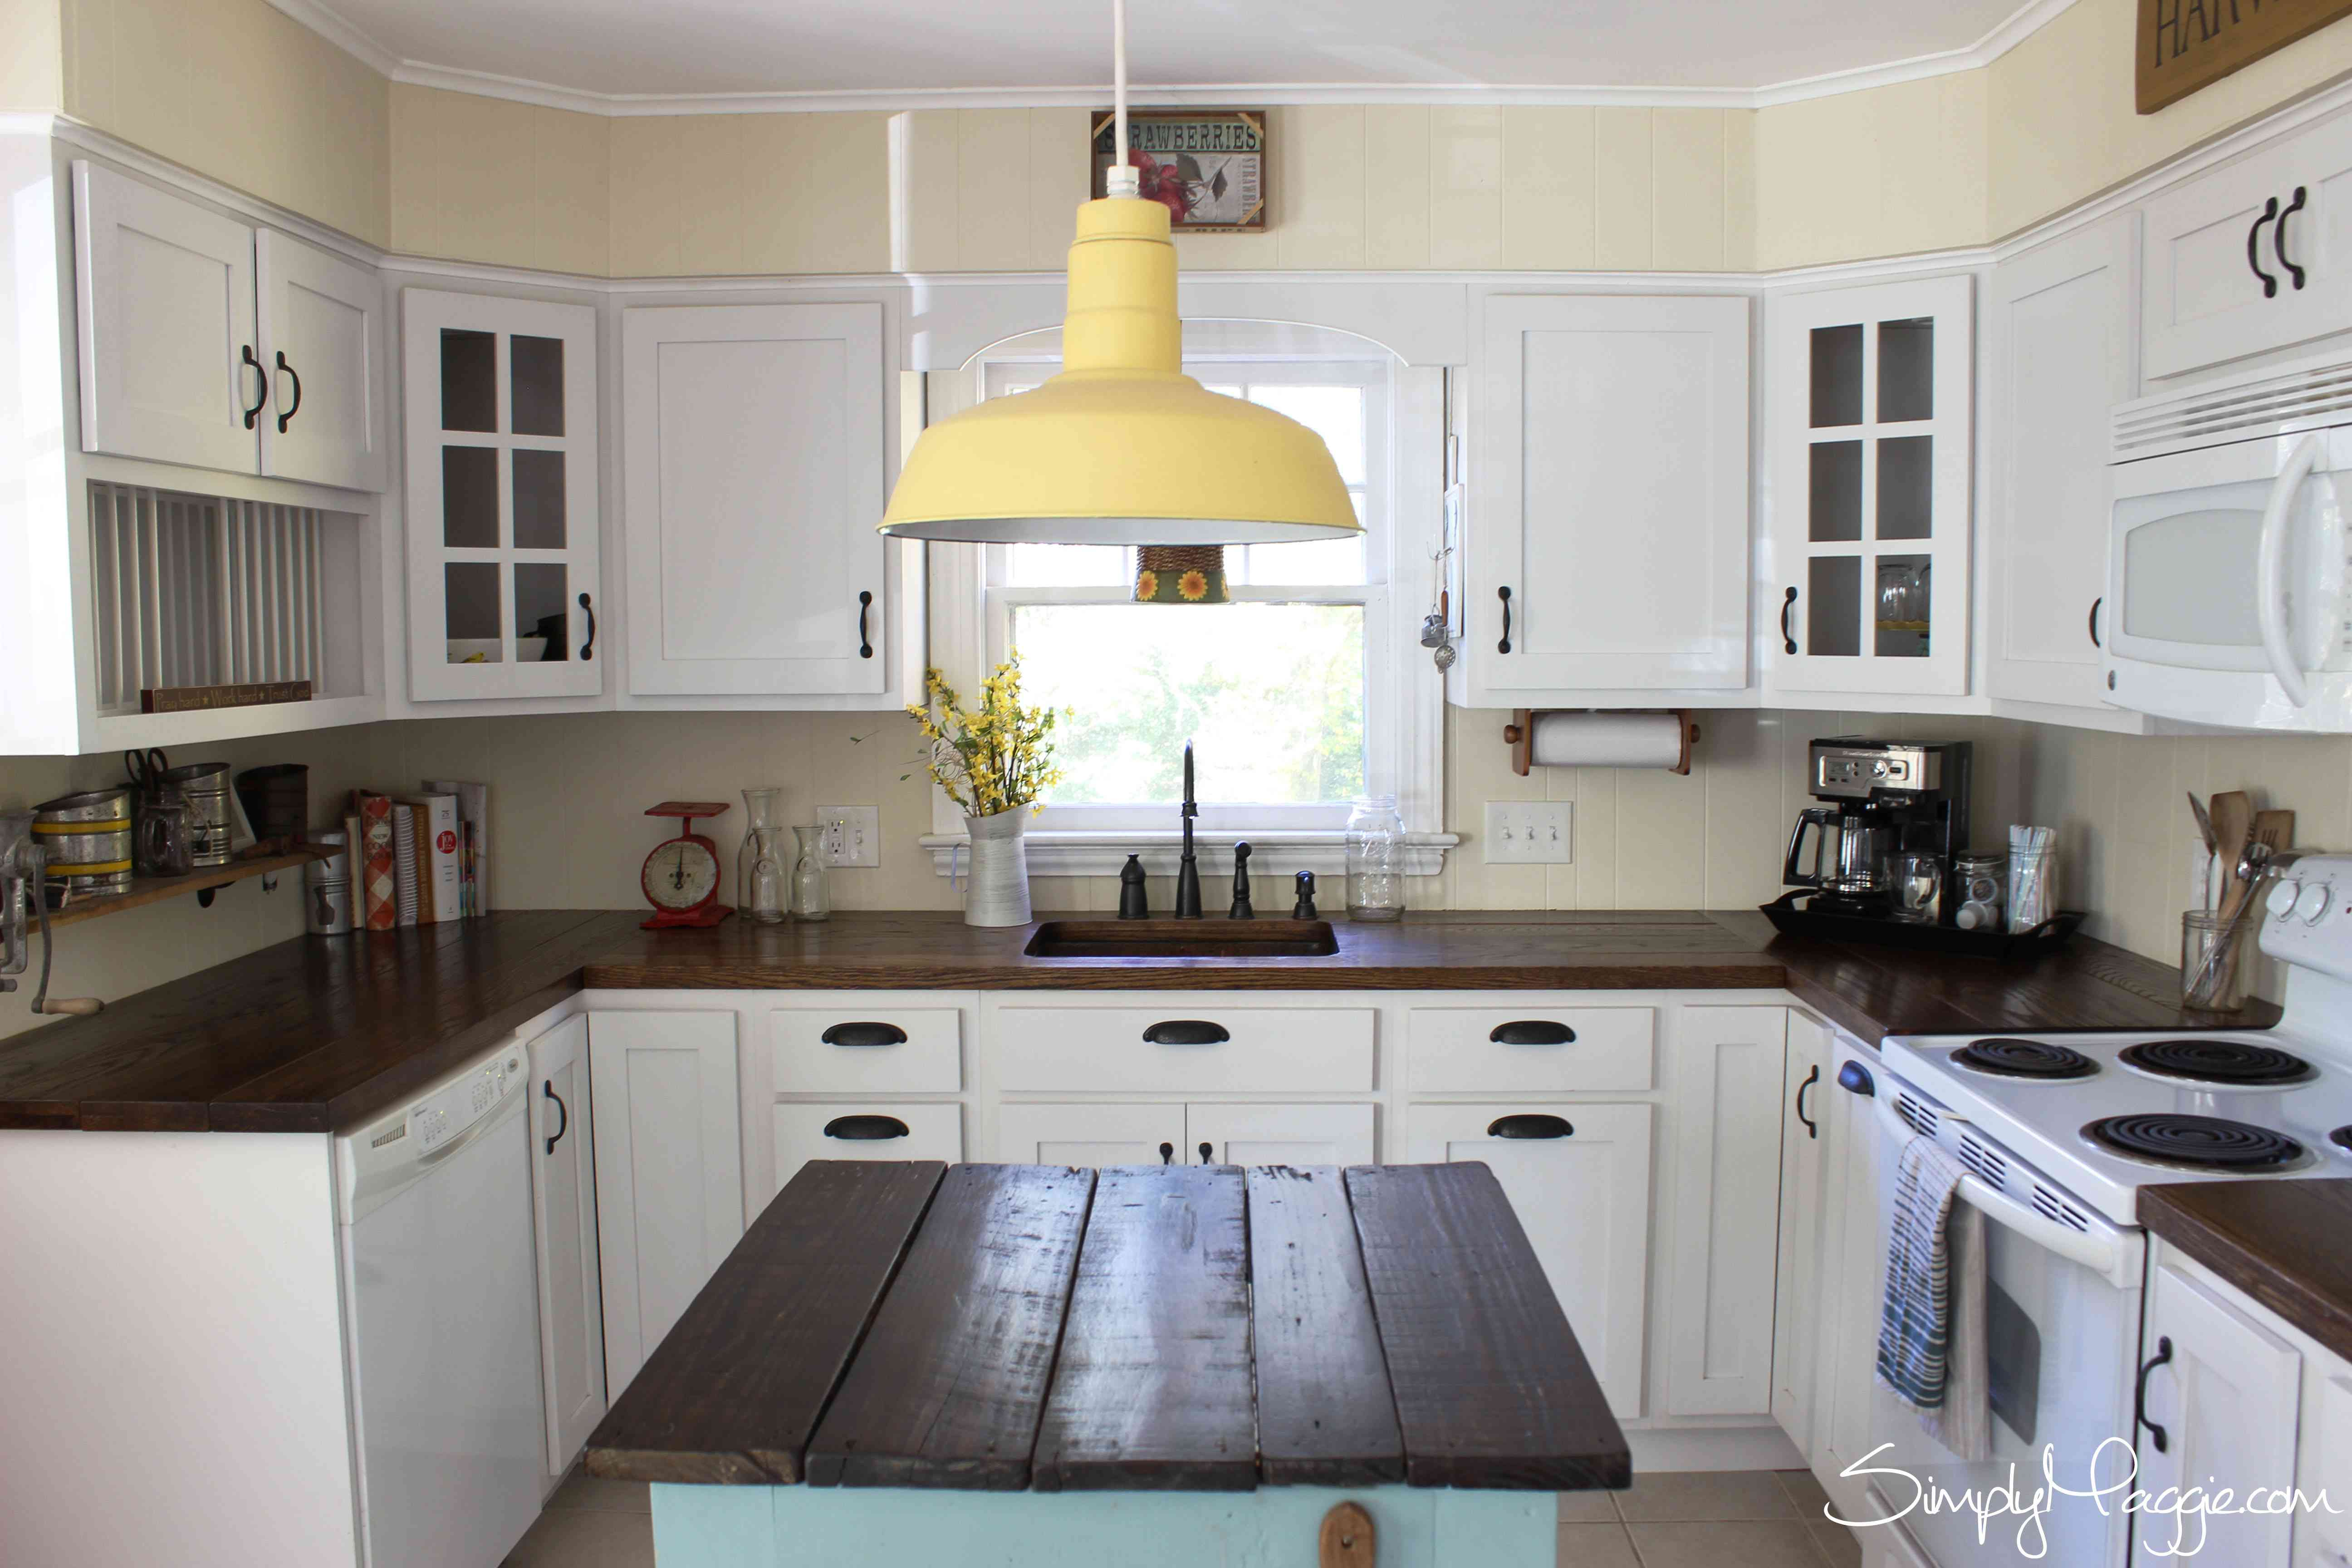 A kitchen with dark wood counters